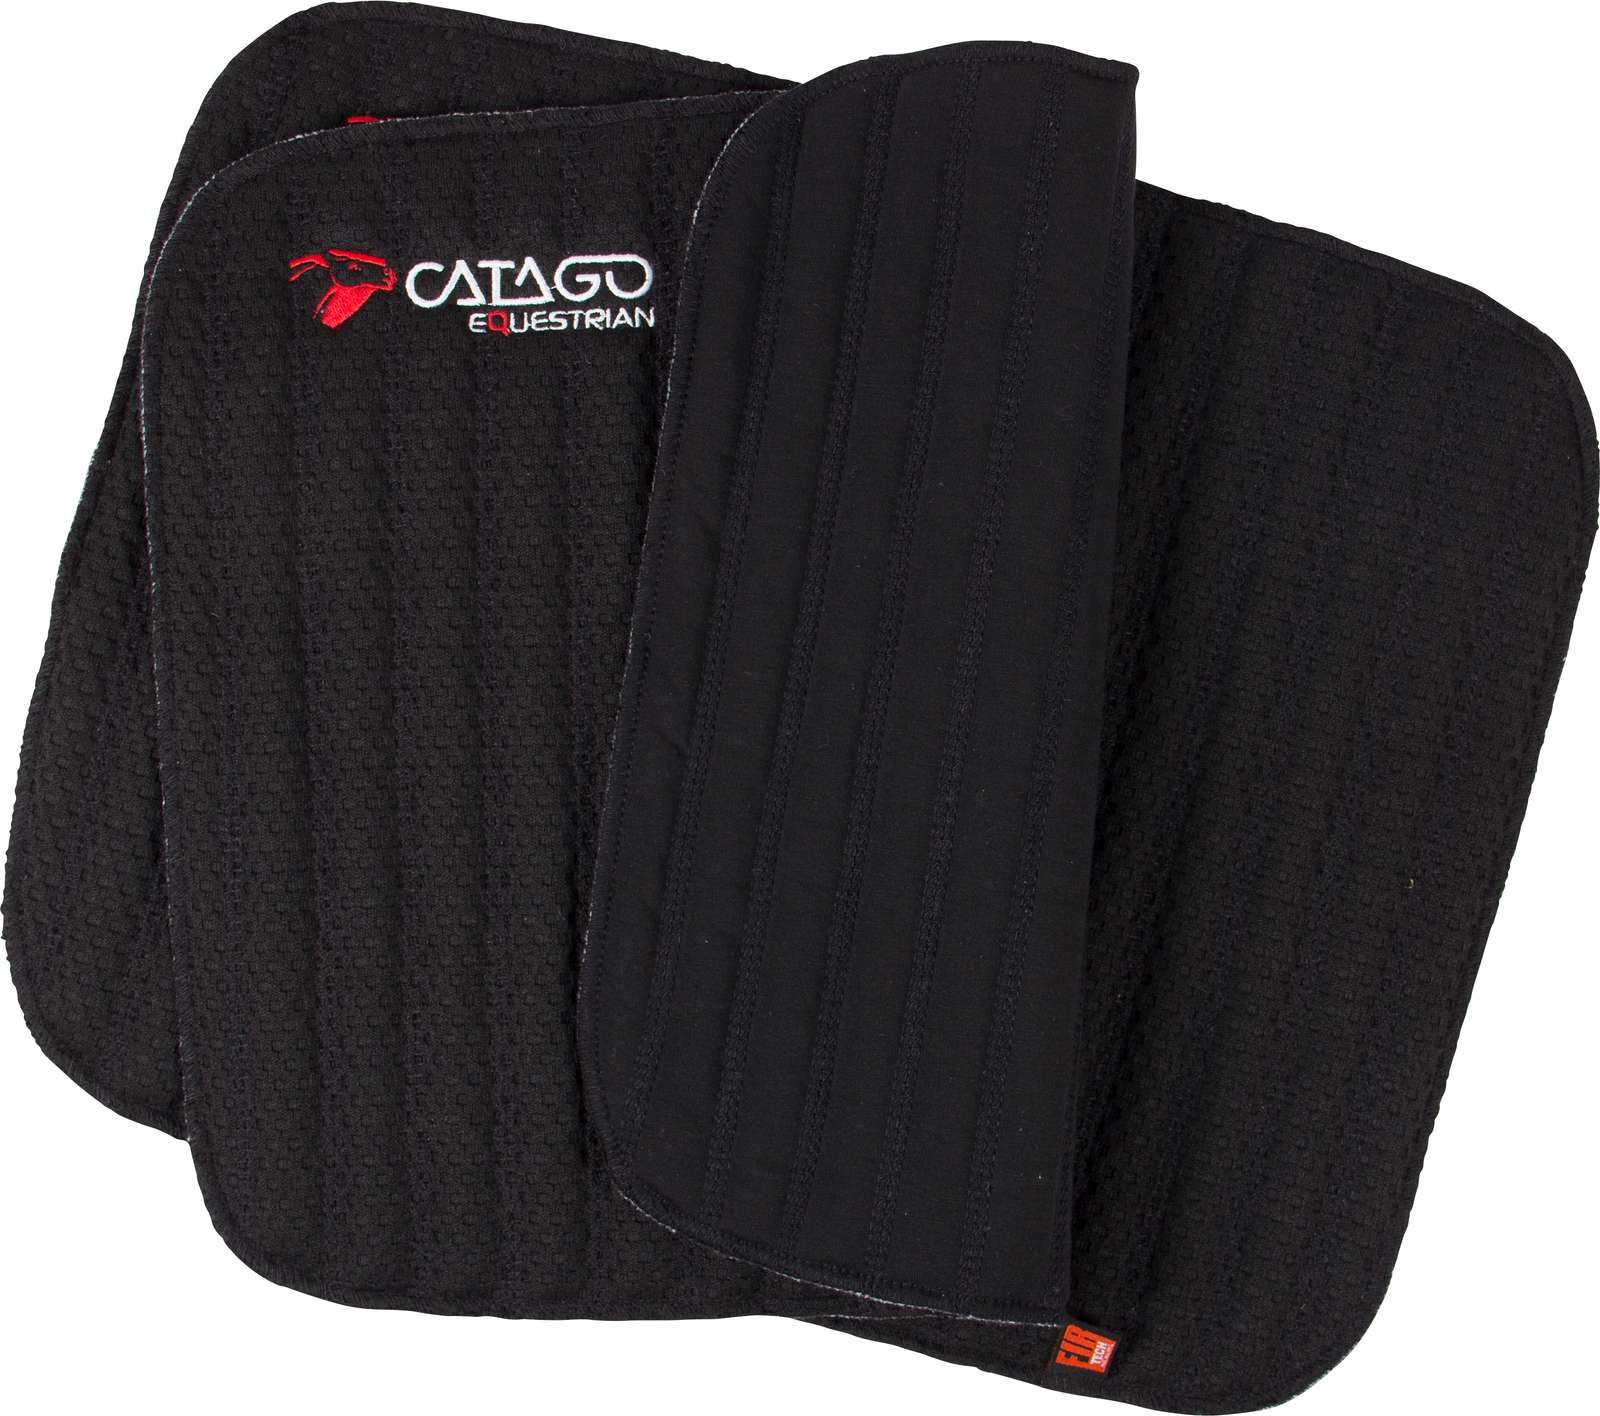 Catago Fir Tech Healing Wrap for Riding - Black or White - Divine Equestrian